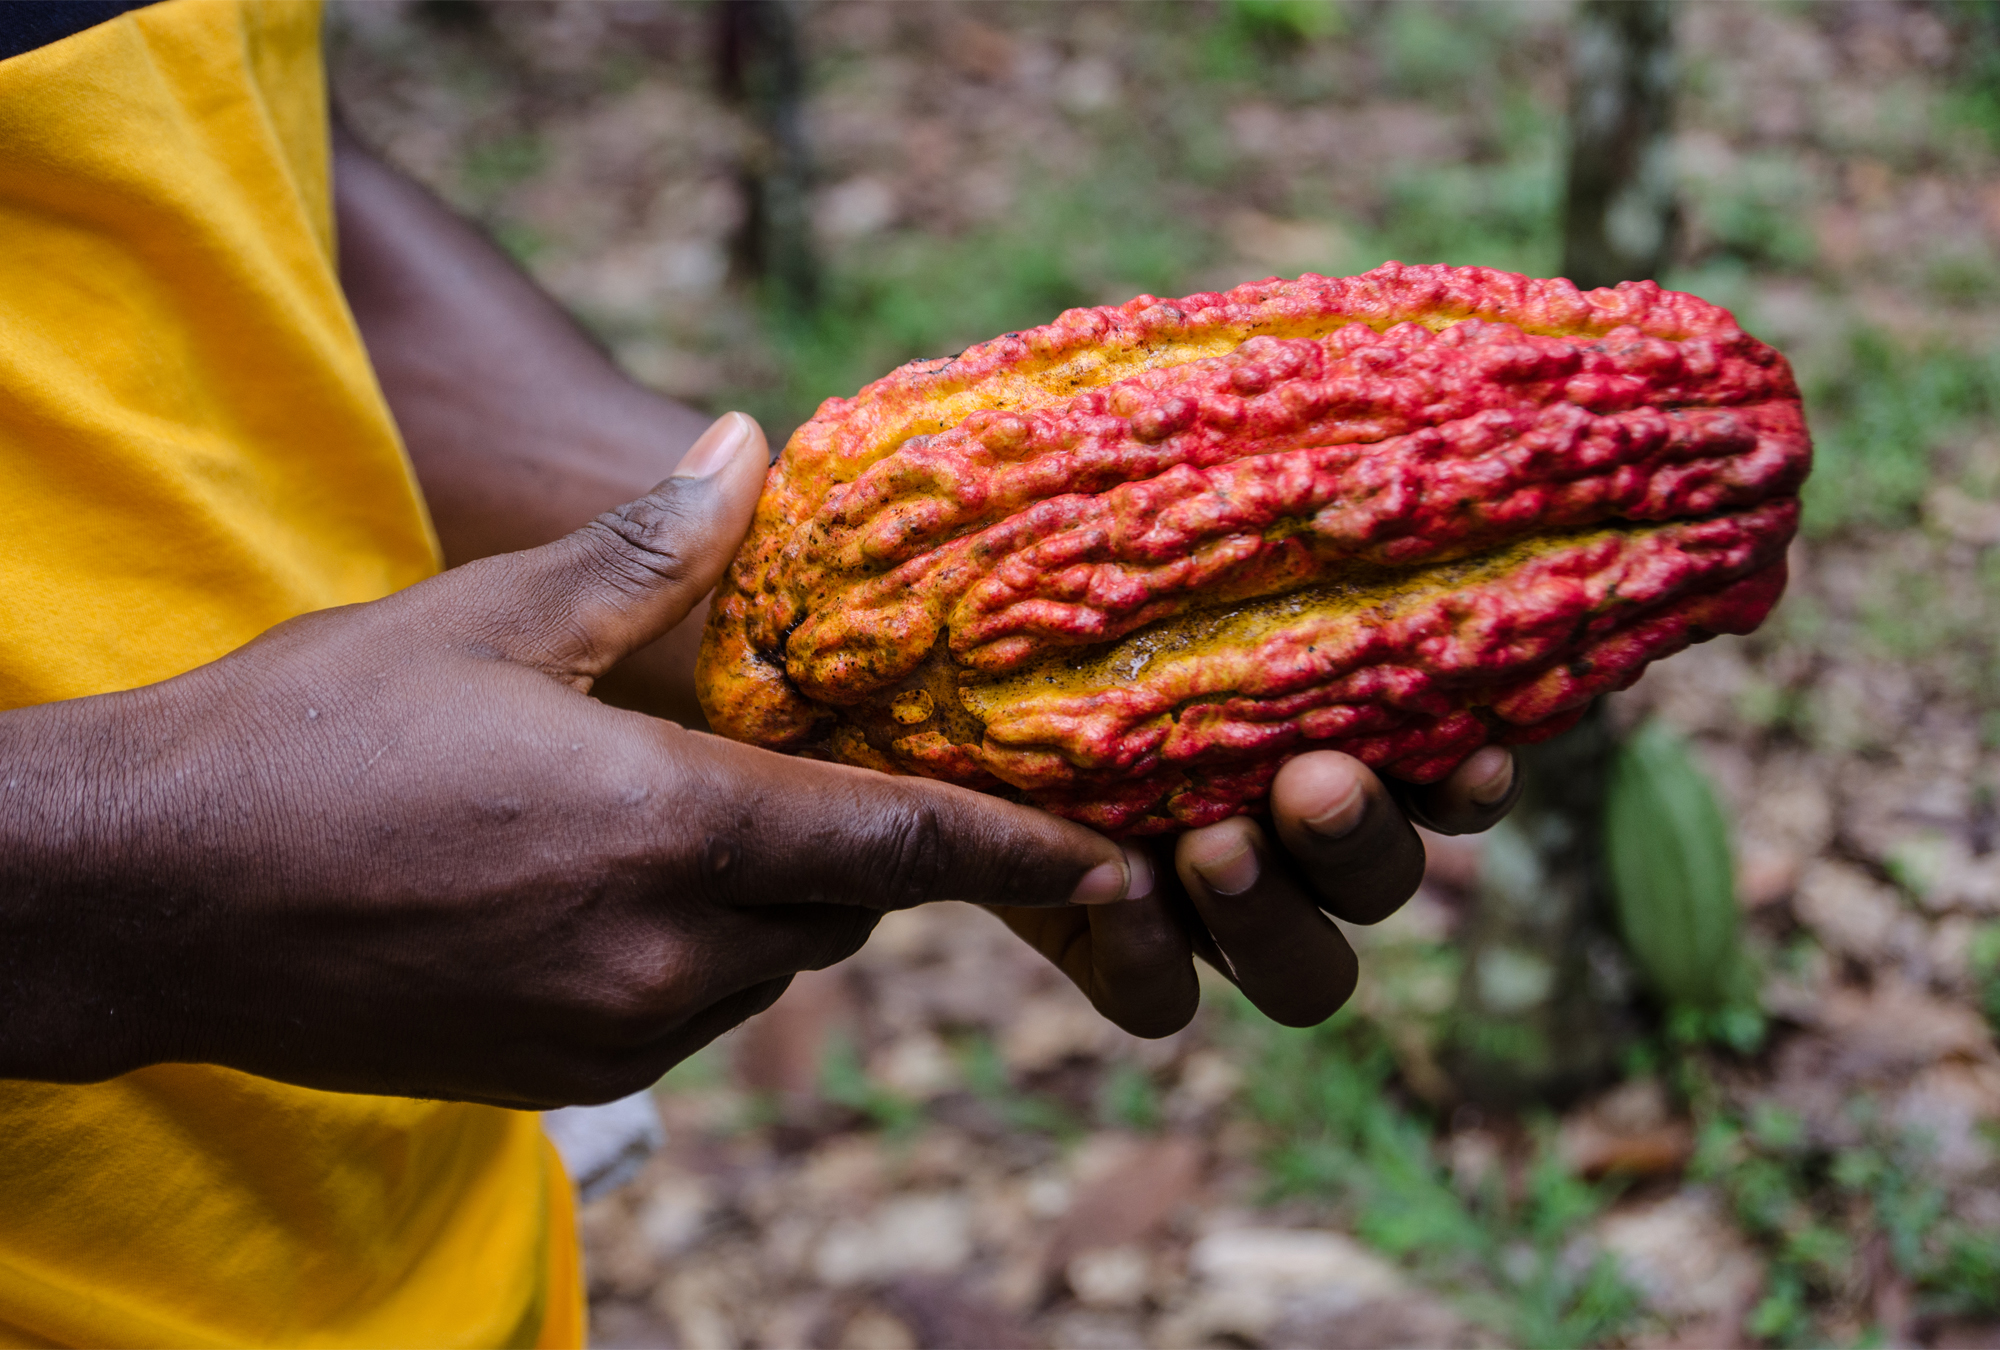 A person holding a red and yellow cocoa pod in Ghana